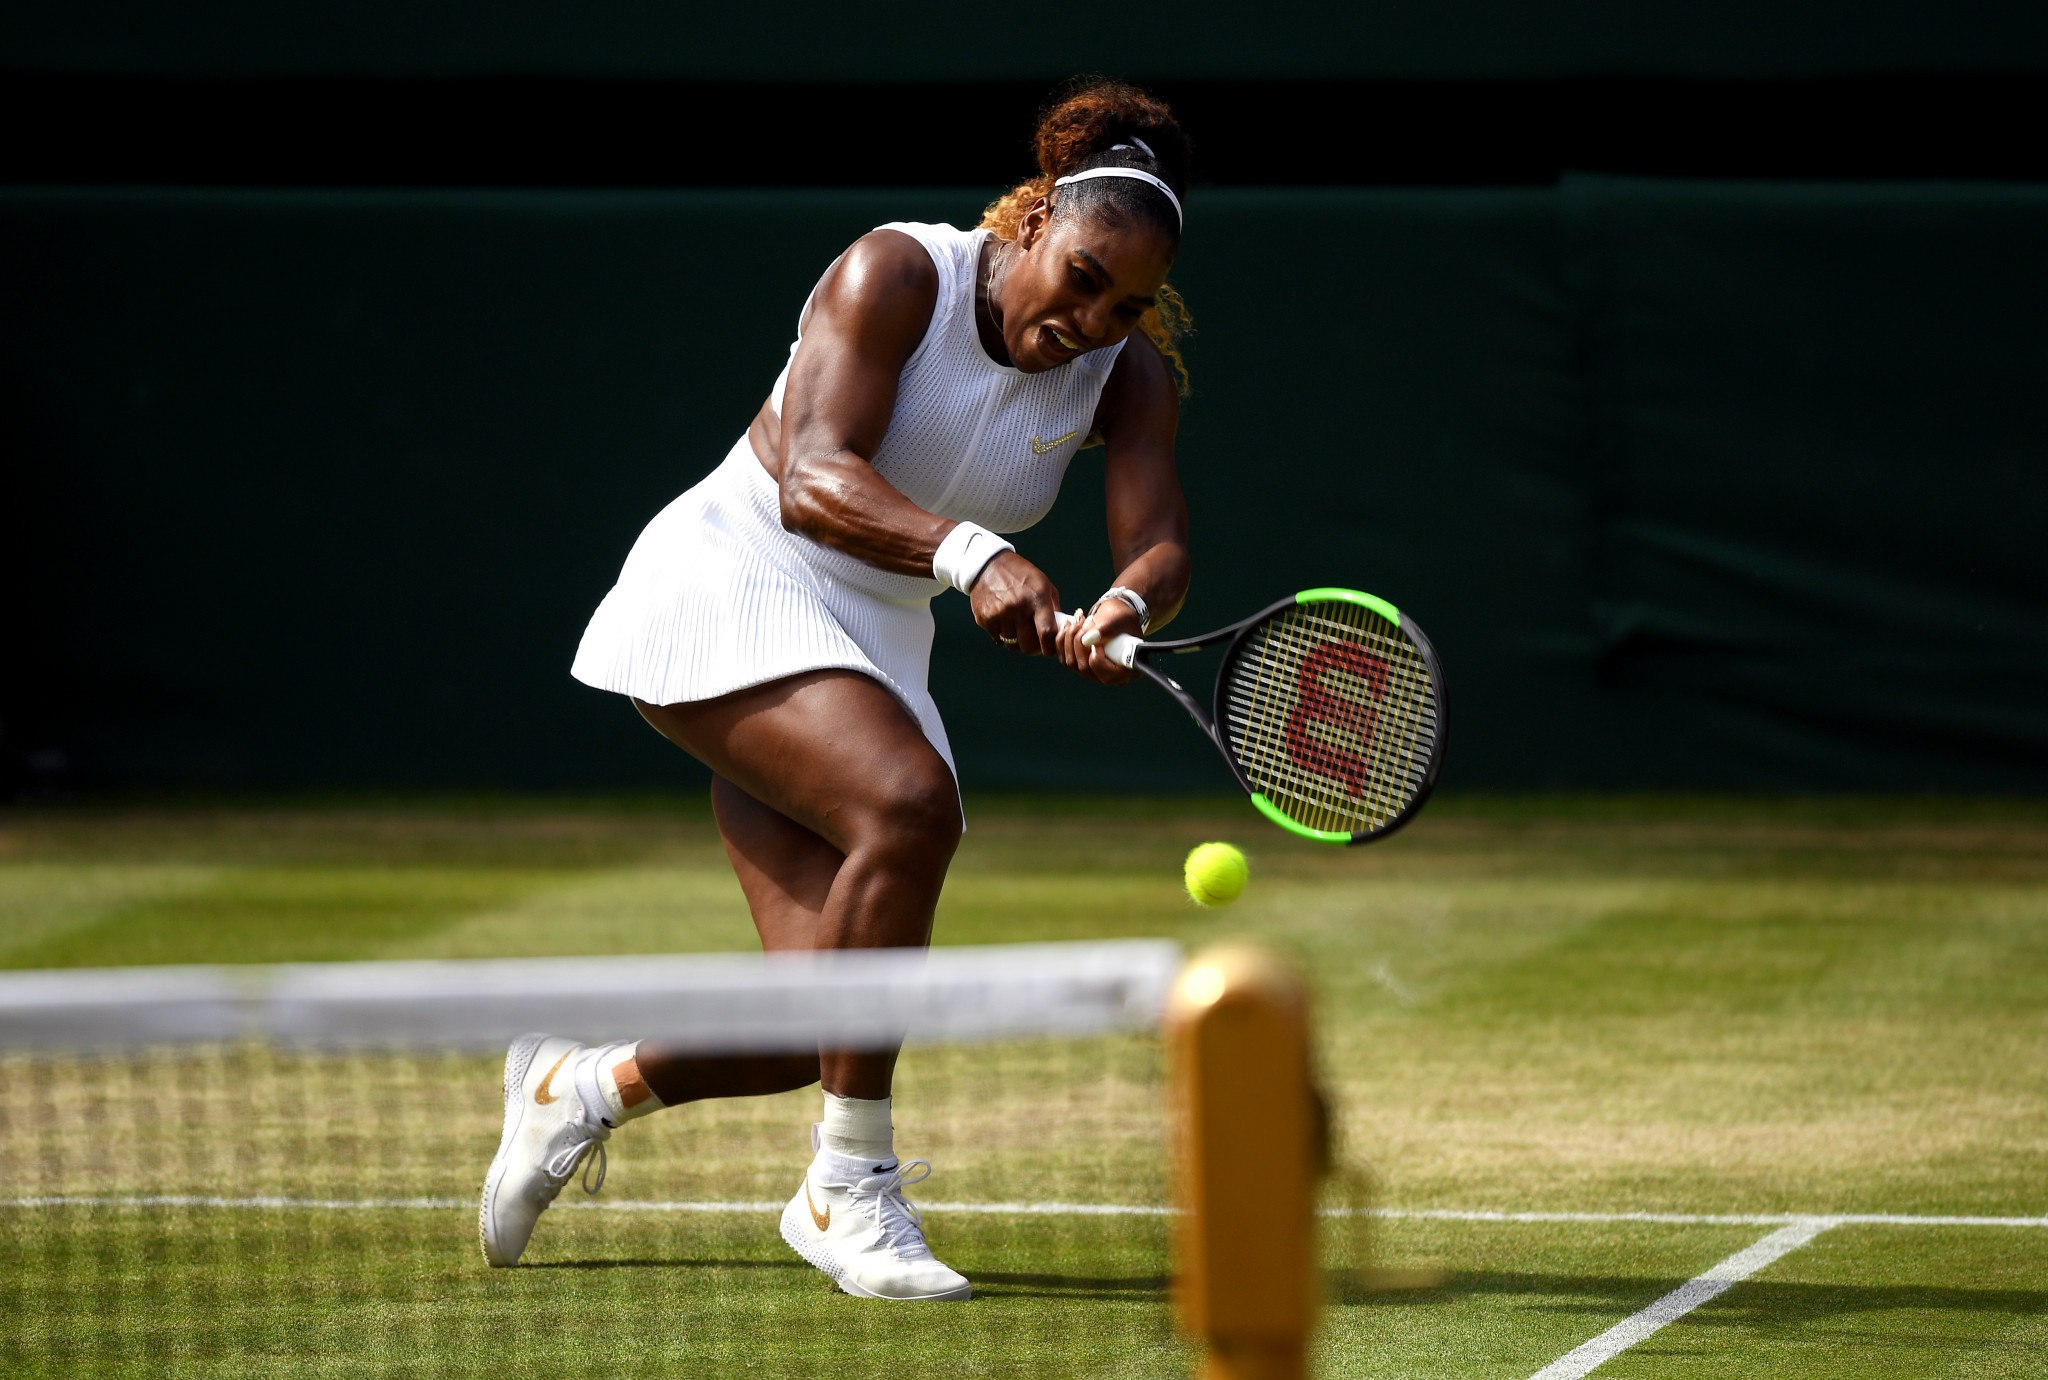 Seven-times champion Serena Williams powered into the final with an easy victory over Czech Republic's Barbora Strýcová ©Getty Images